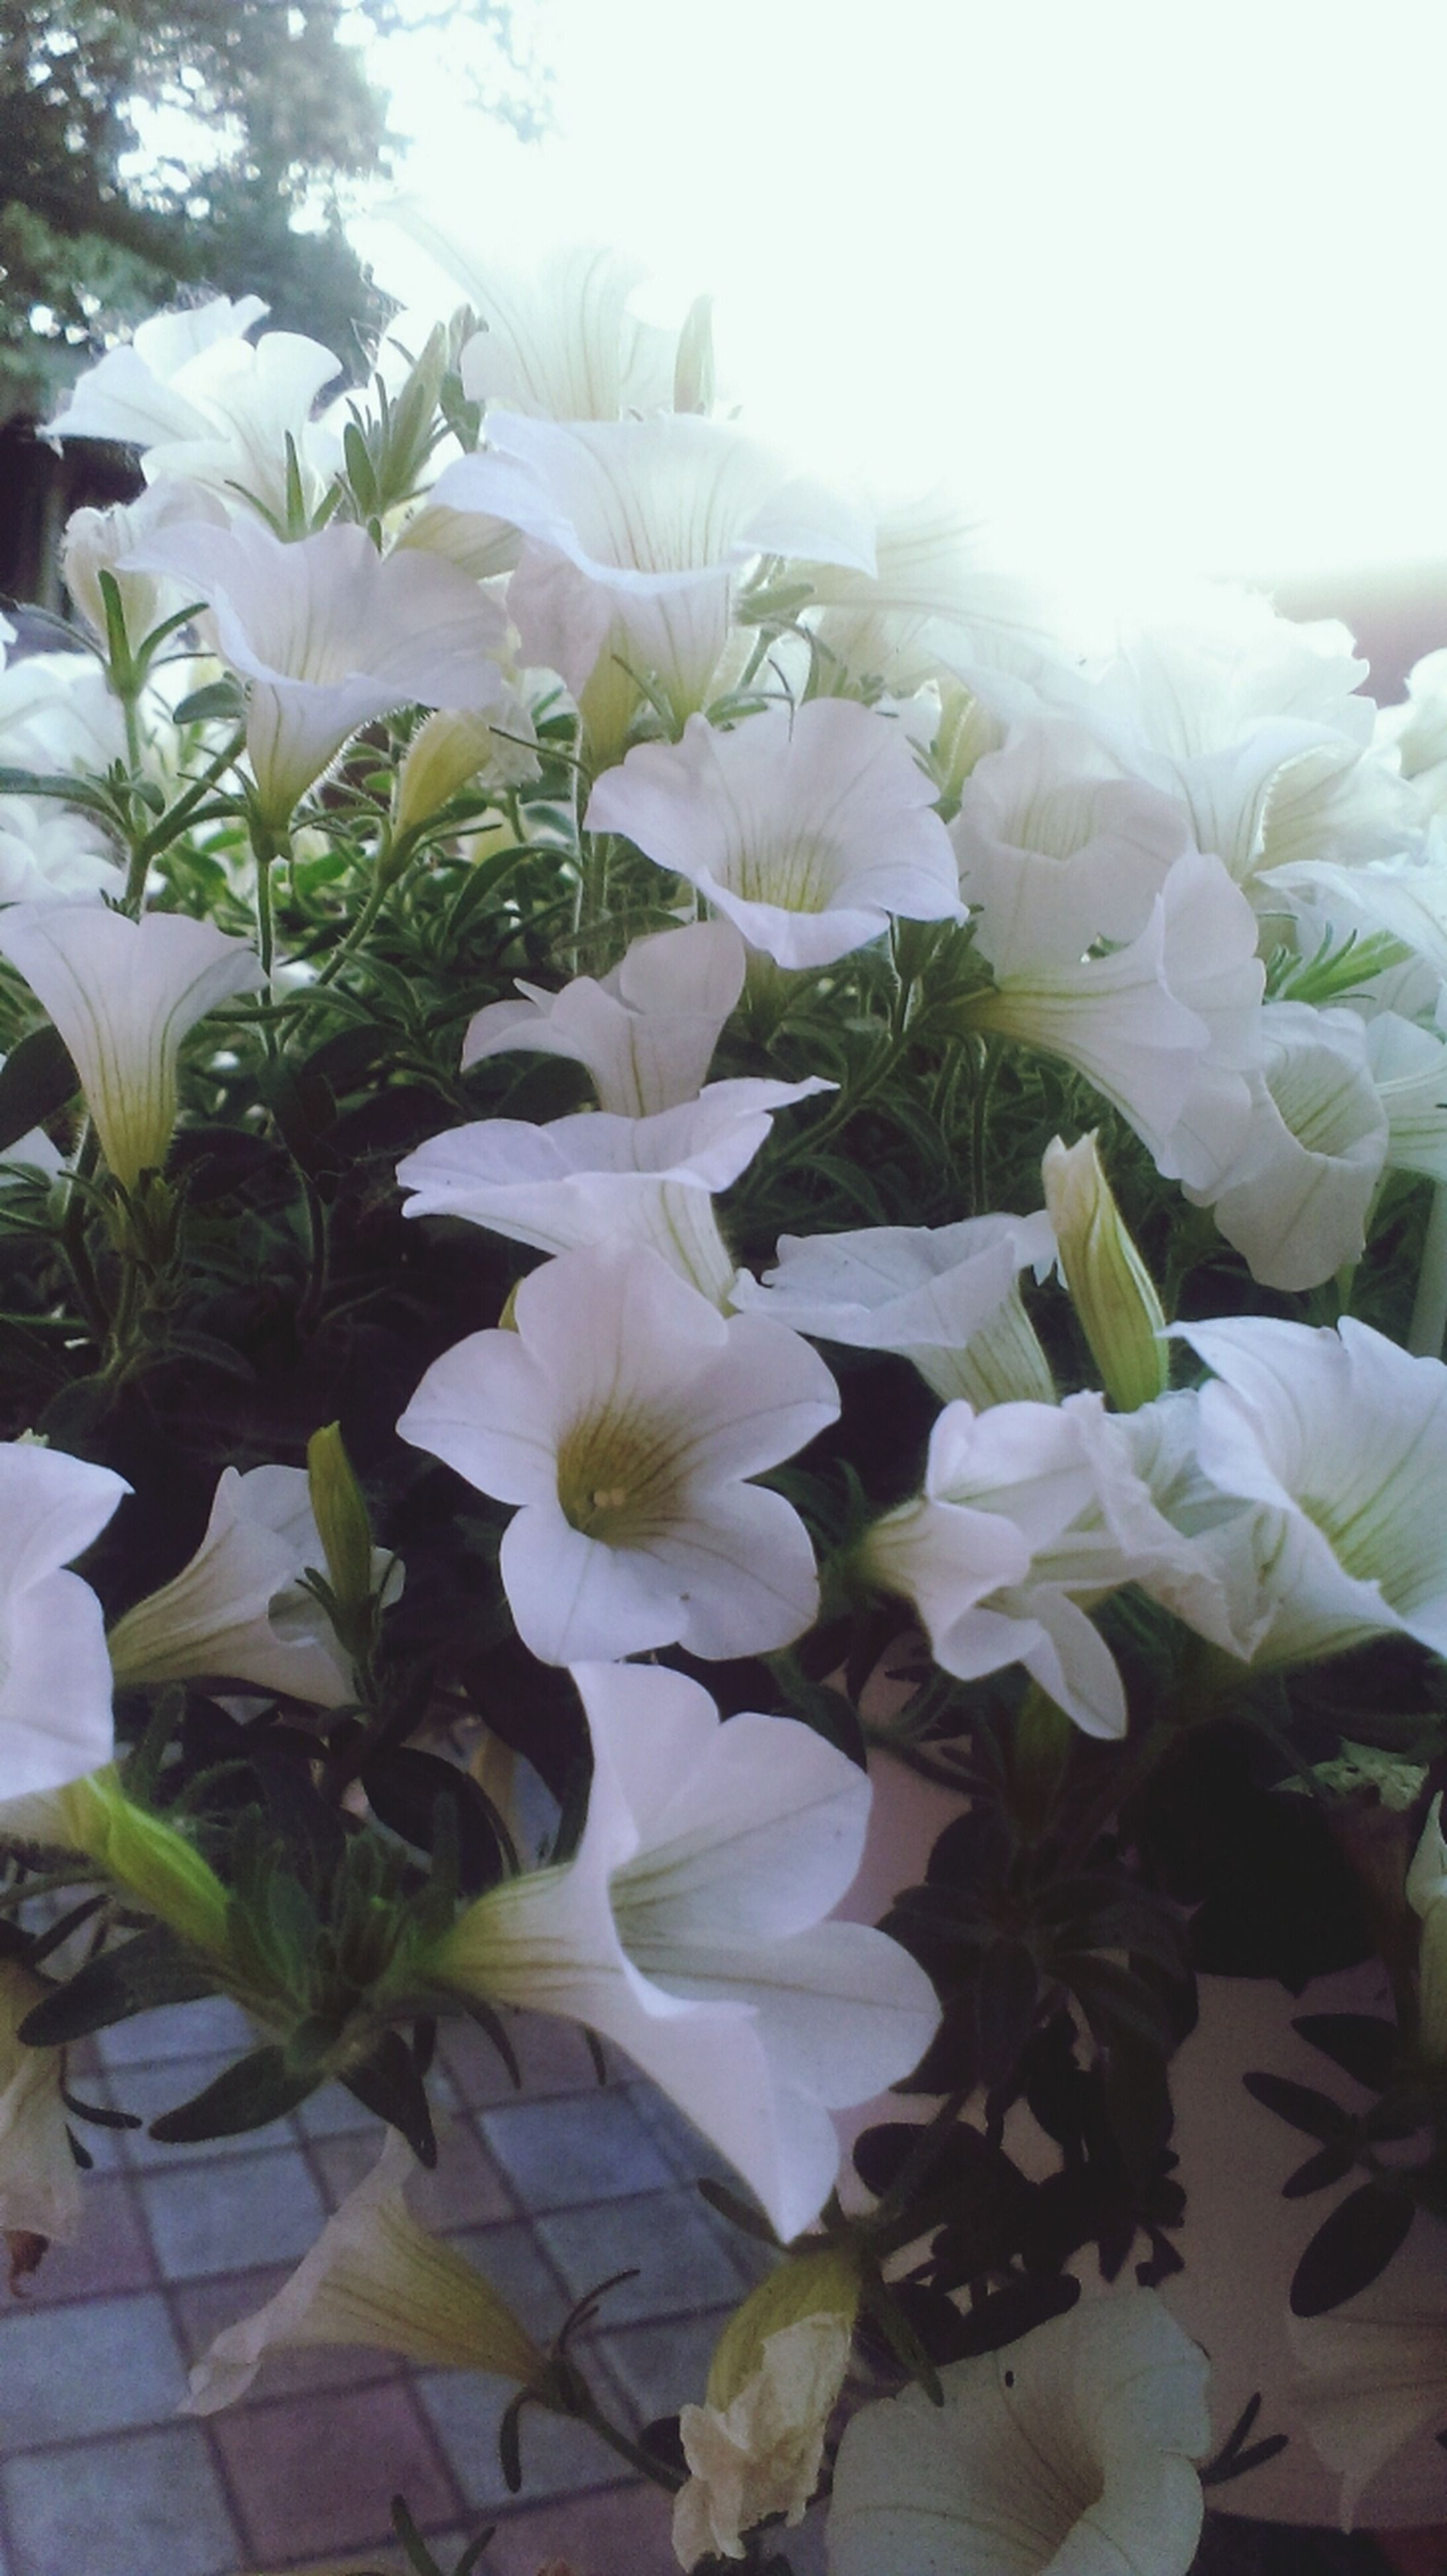 flower, freshness, petal, white color, fragility, growth, leaf, plant, flower head, beauty in nature, nature, blooming, white, close-up, in bloom, potted plant, blossom, no people, day, indoors